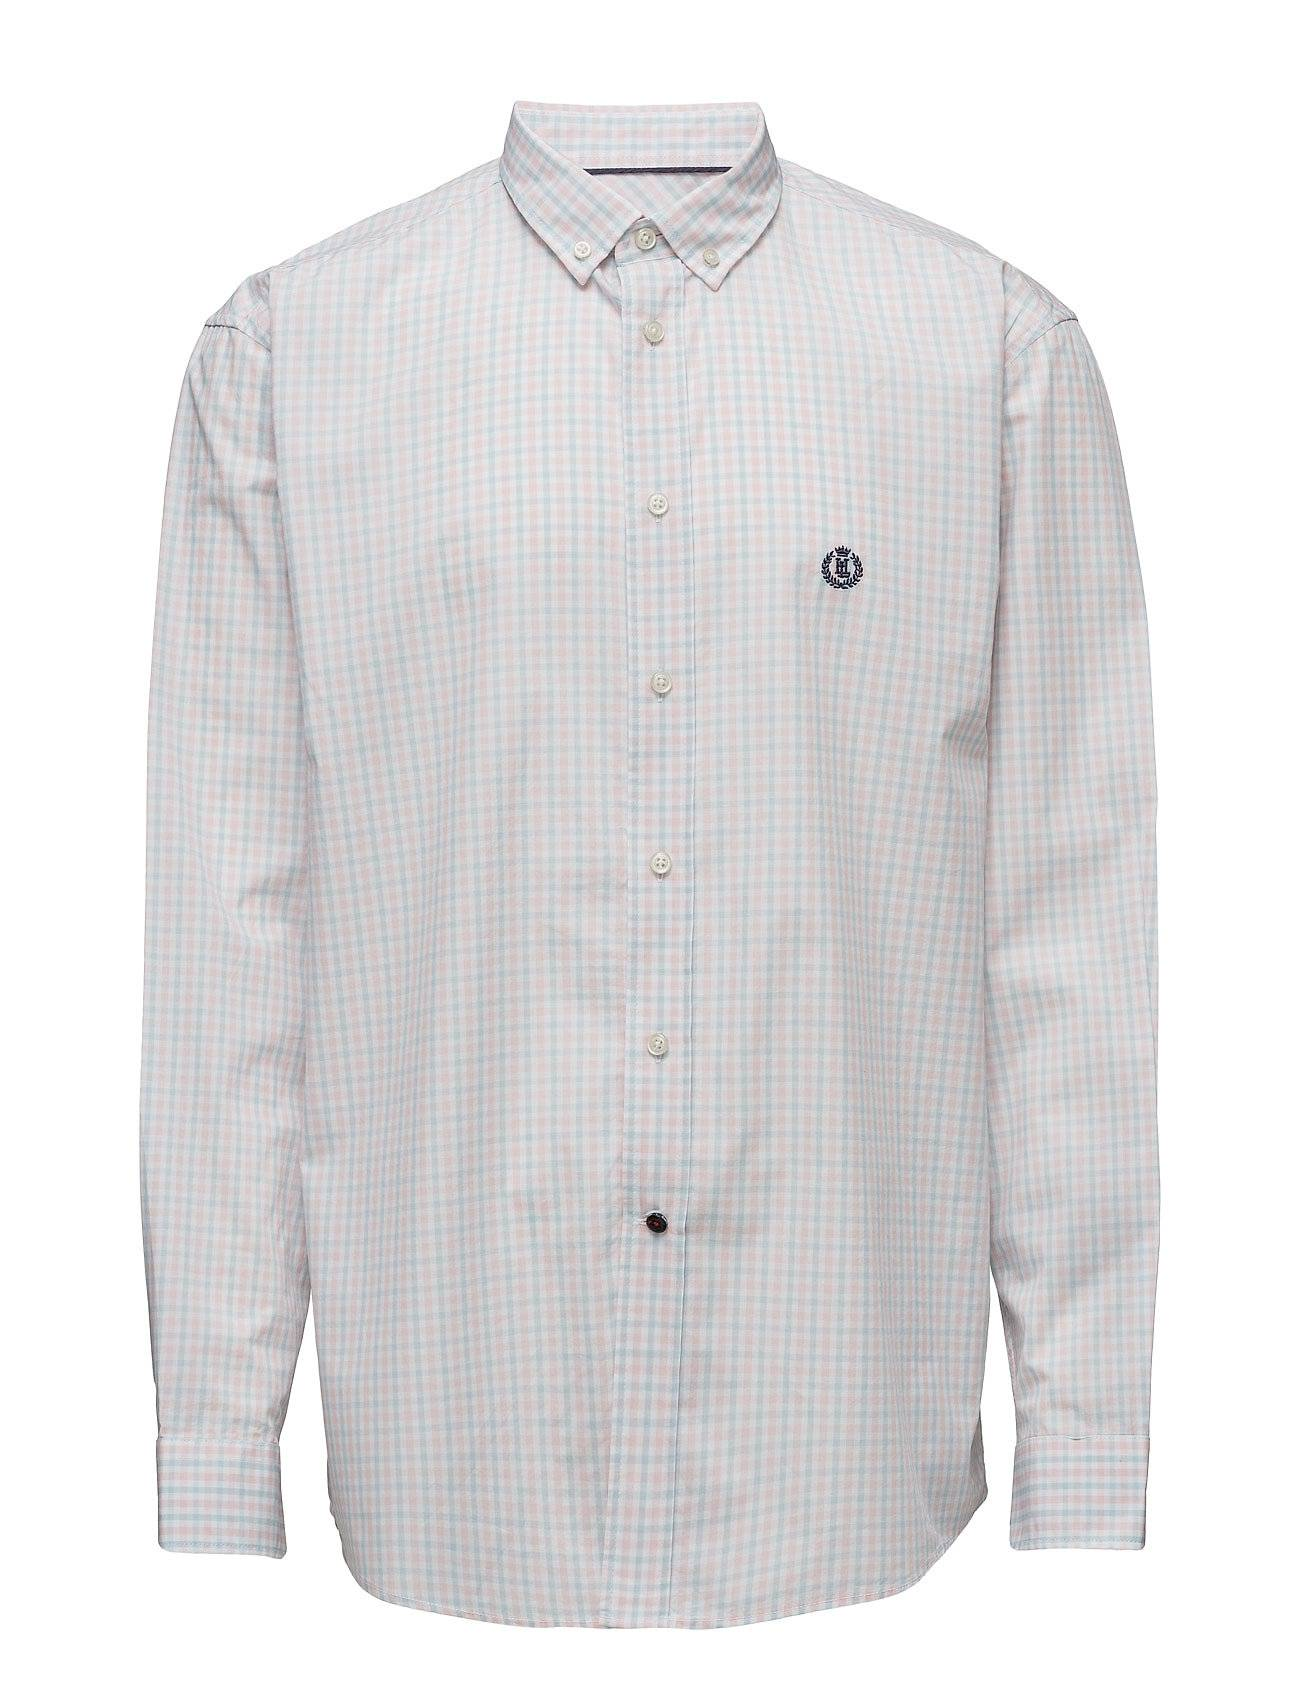 Henri Lloyd Udley Classic Shirt